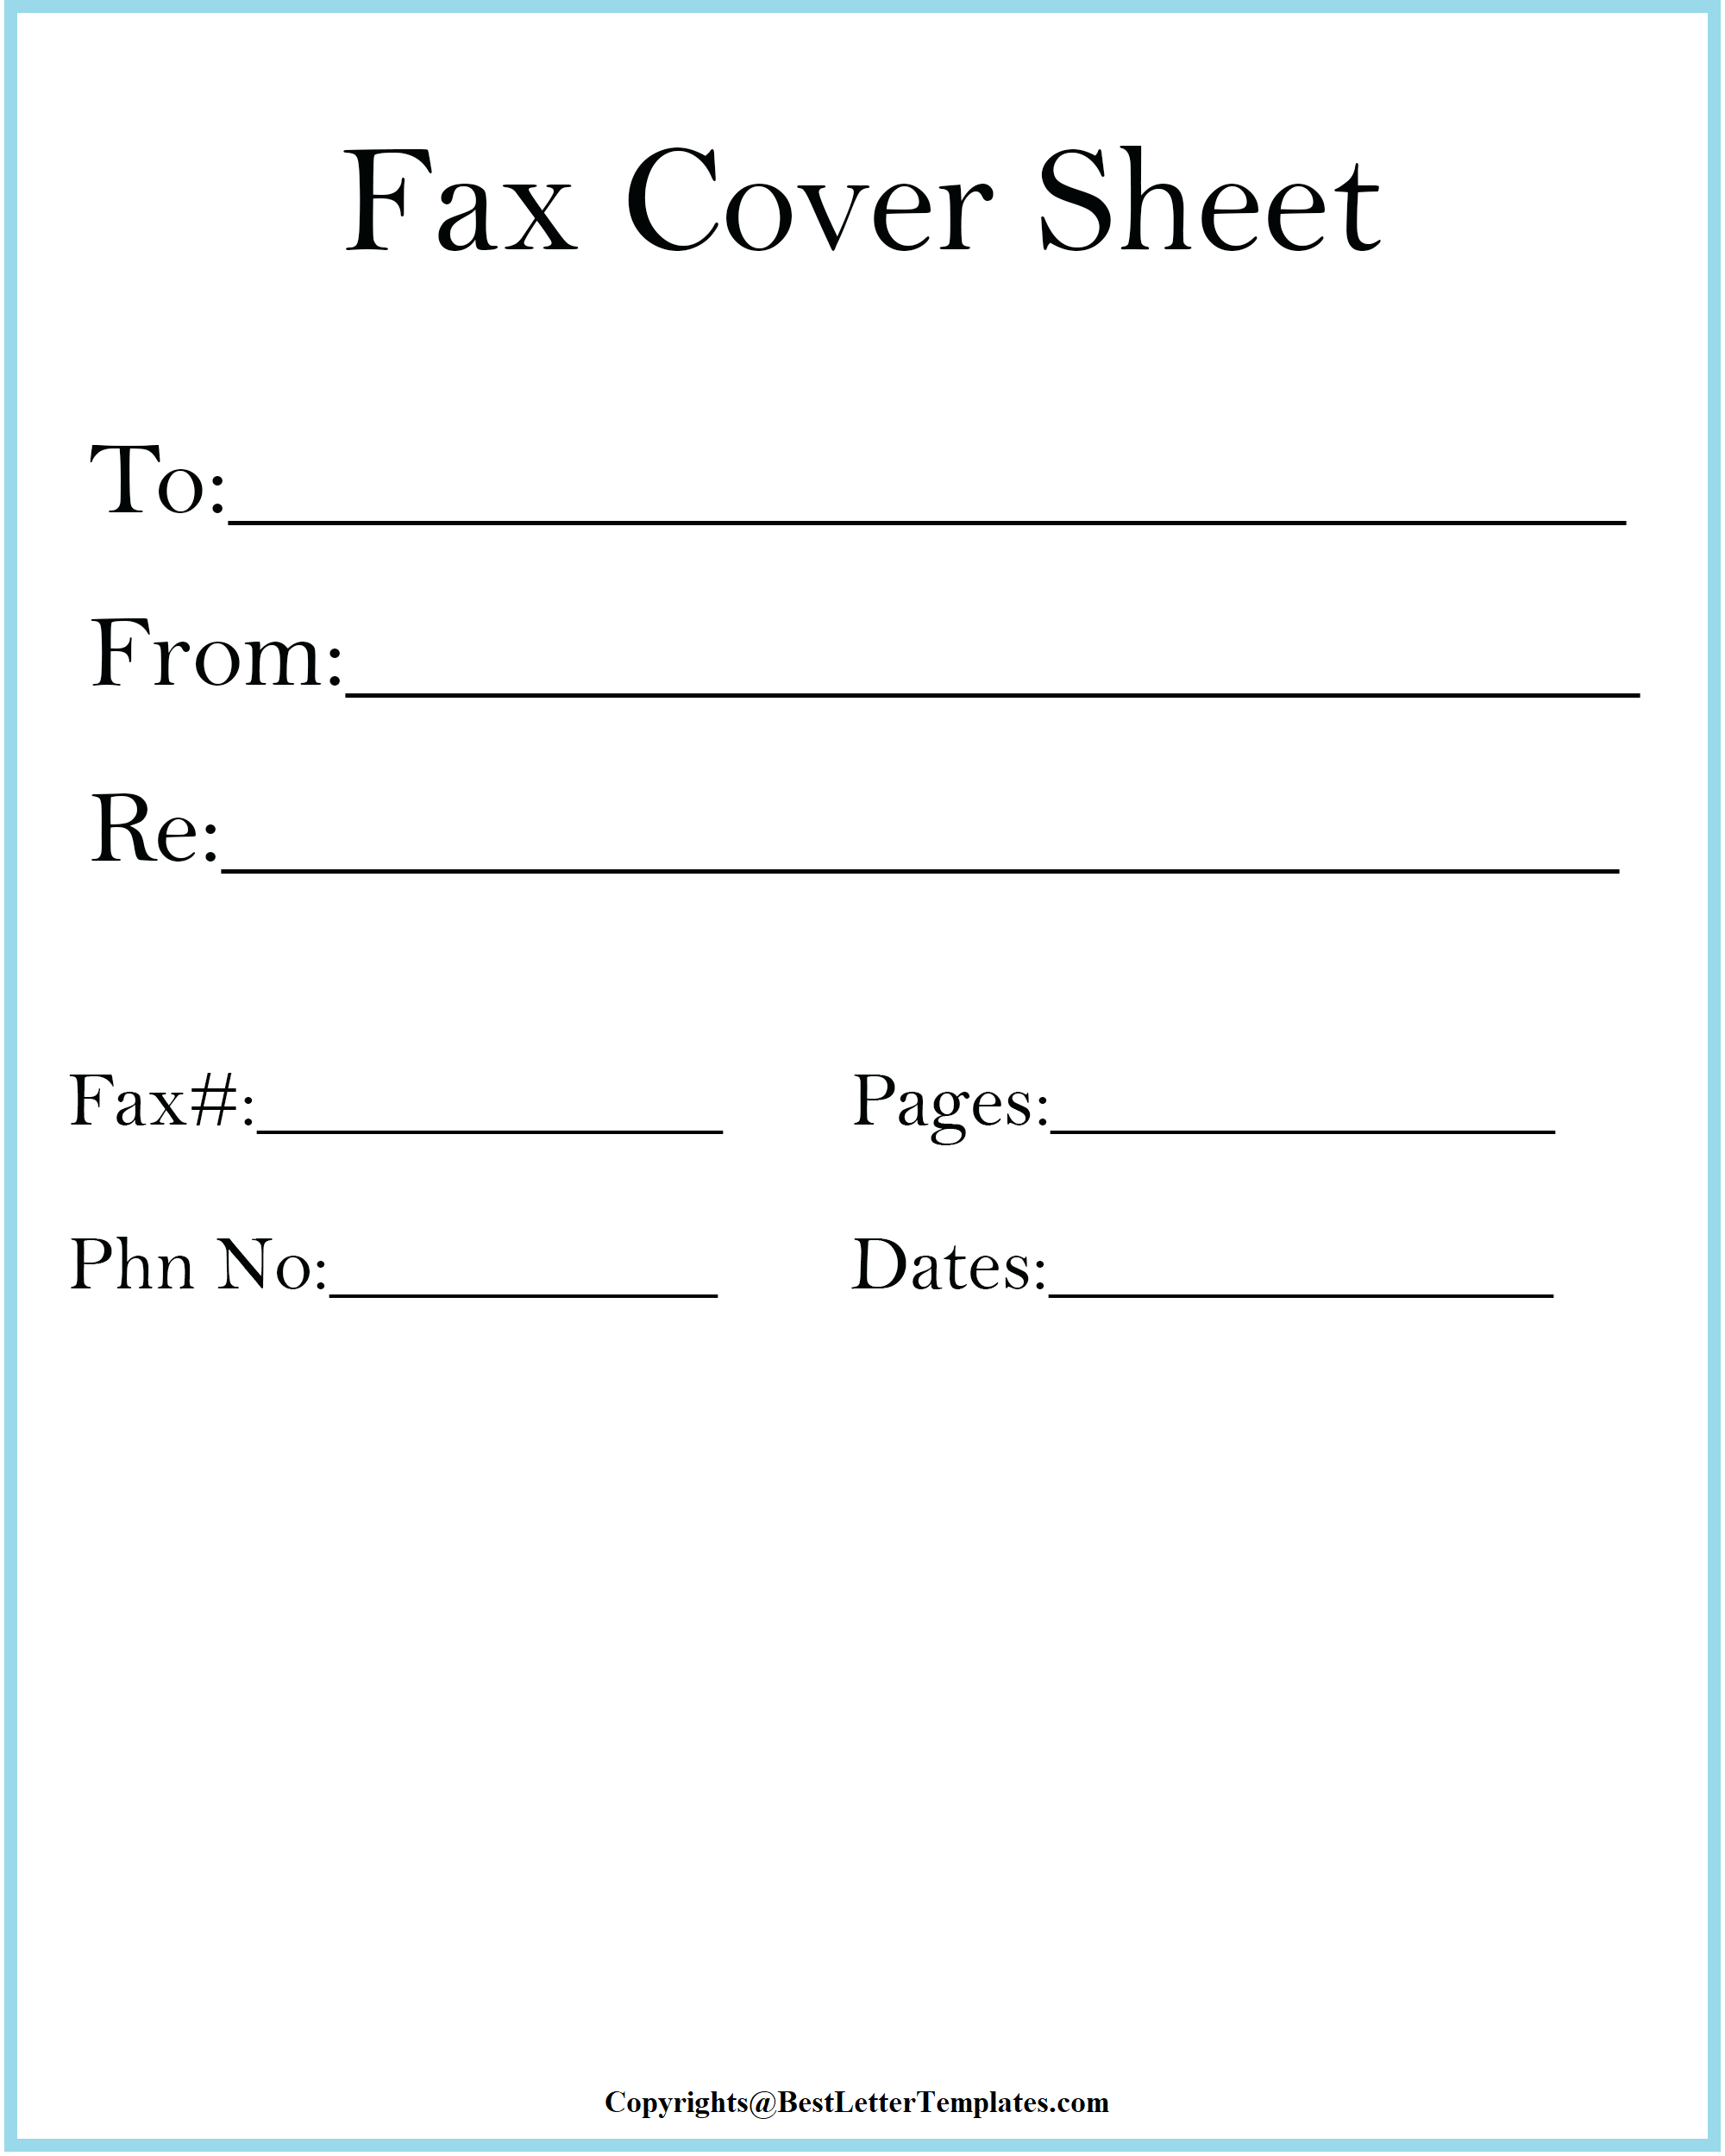 Personal Fax Cover Sheet Download